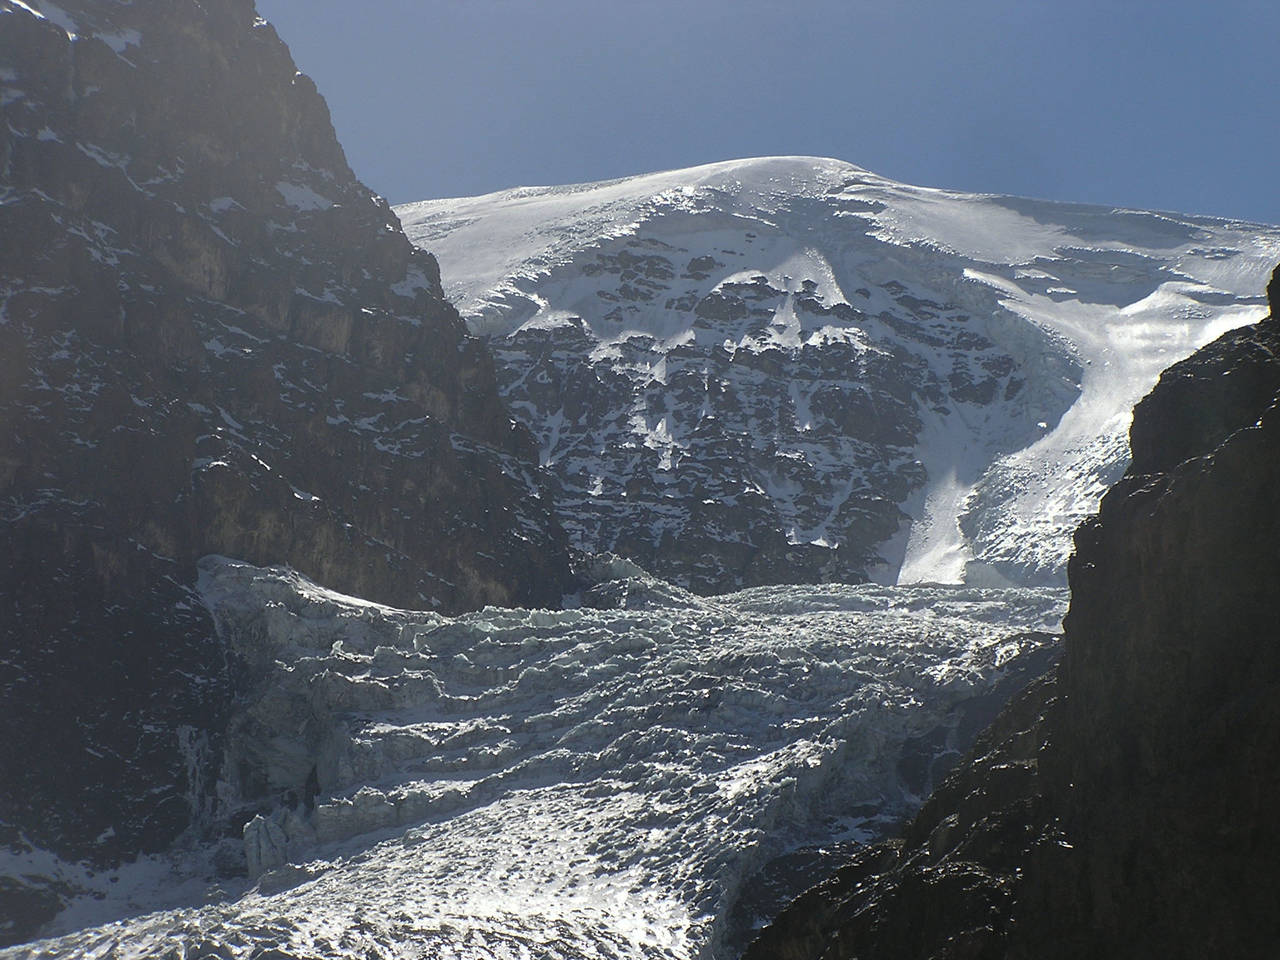 The Paloma Glacier